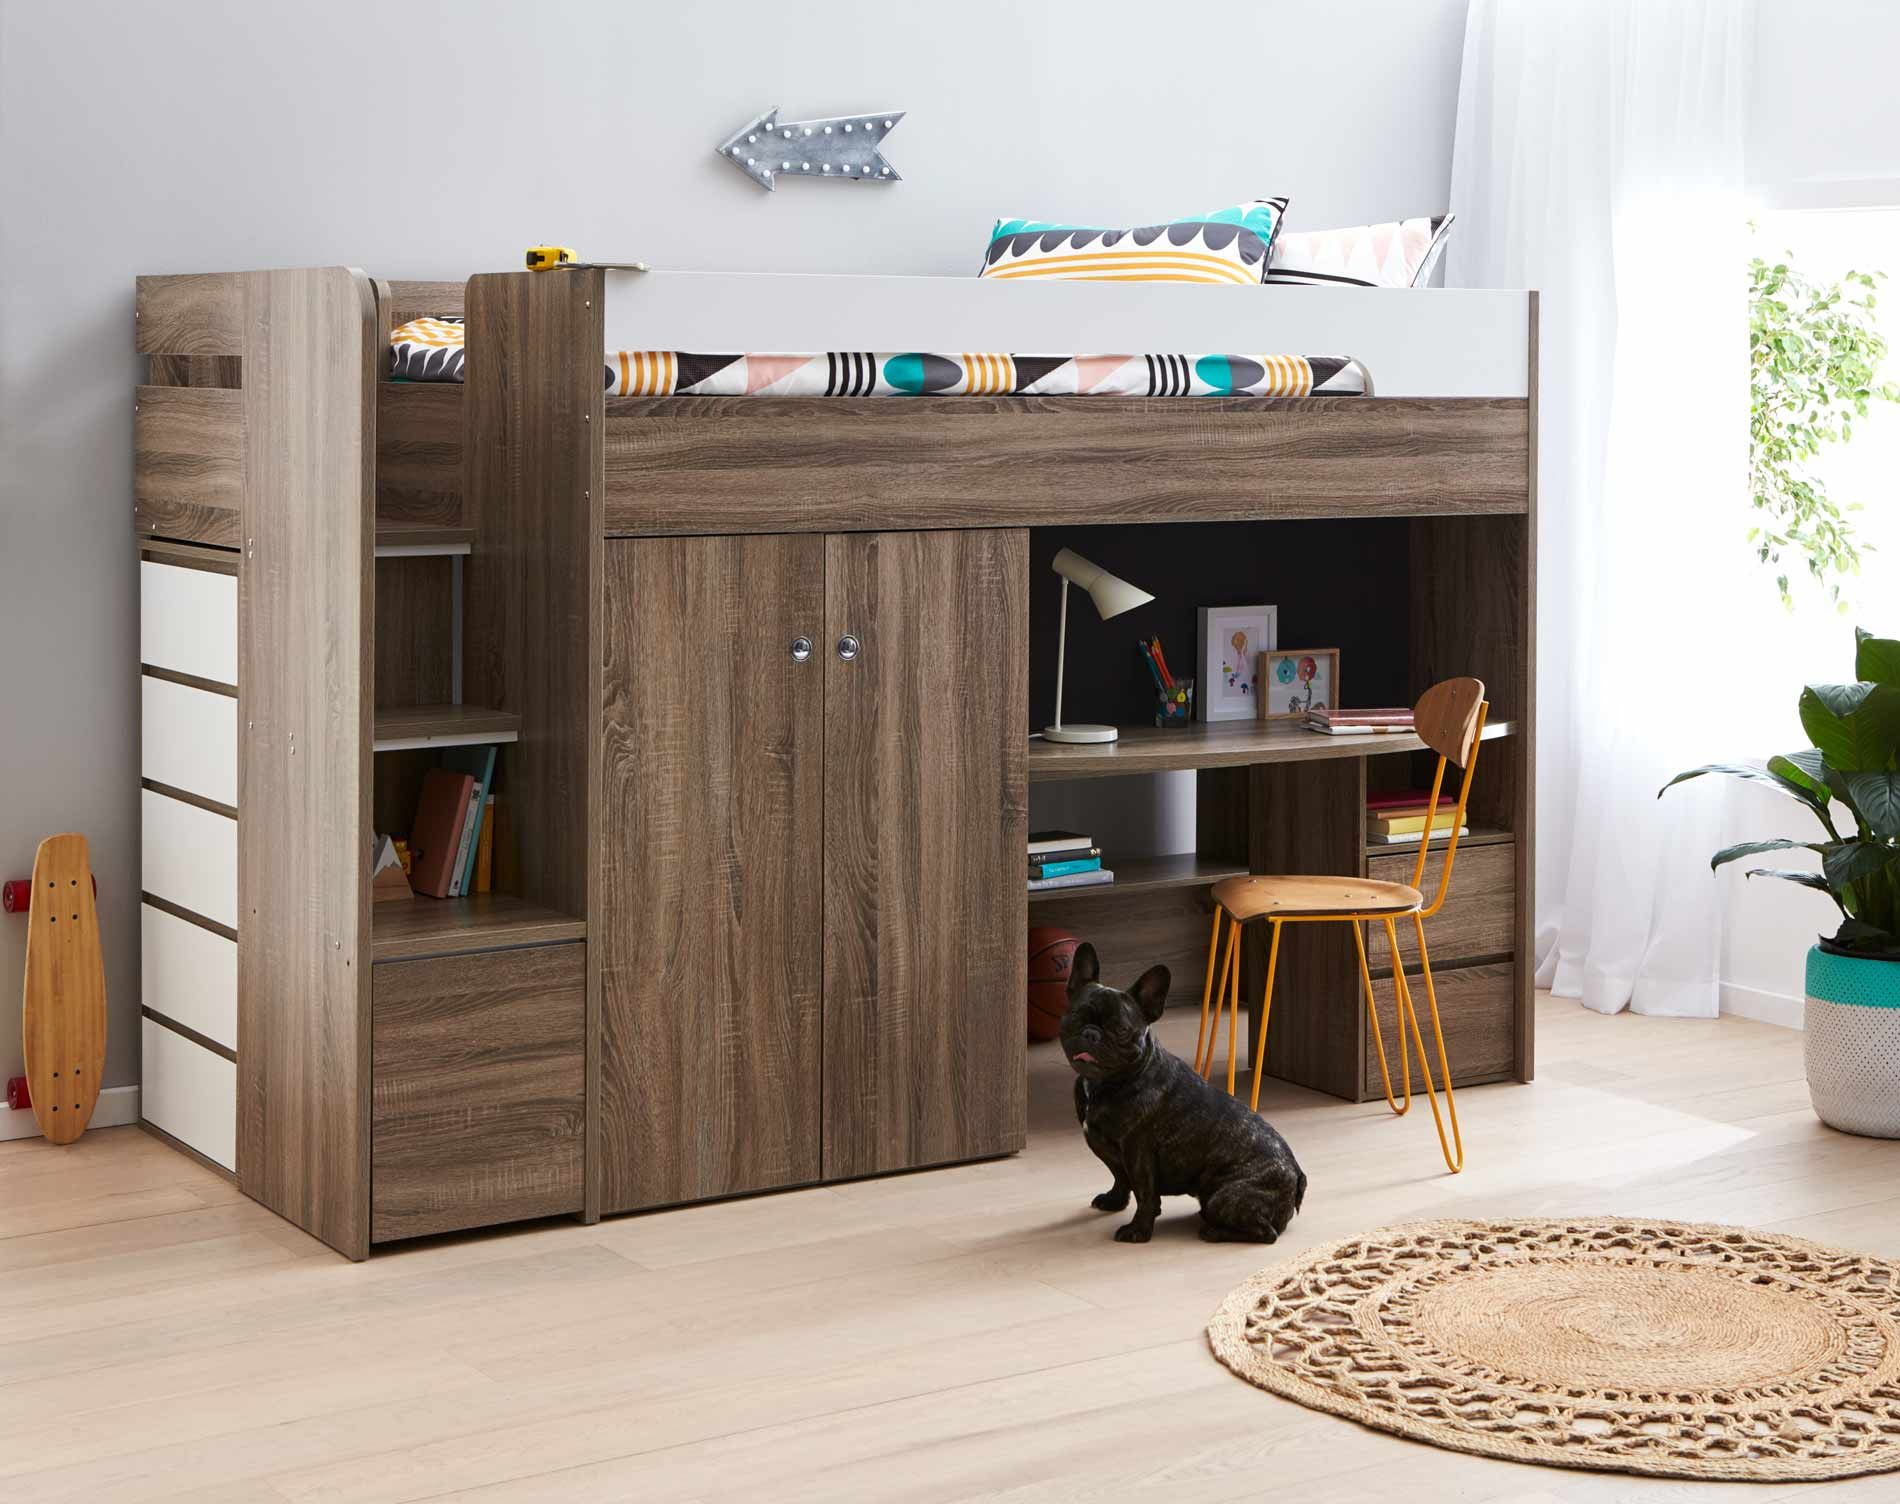 Loft bed with stairs and desk  QUANTUM KSB LOFT BED WSTAIR DRAWER u DESK image   James